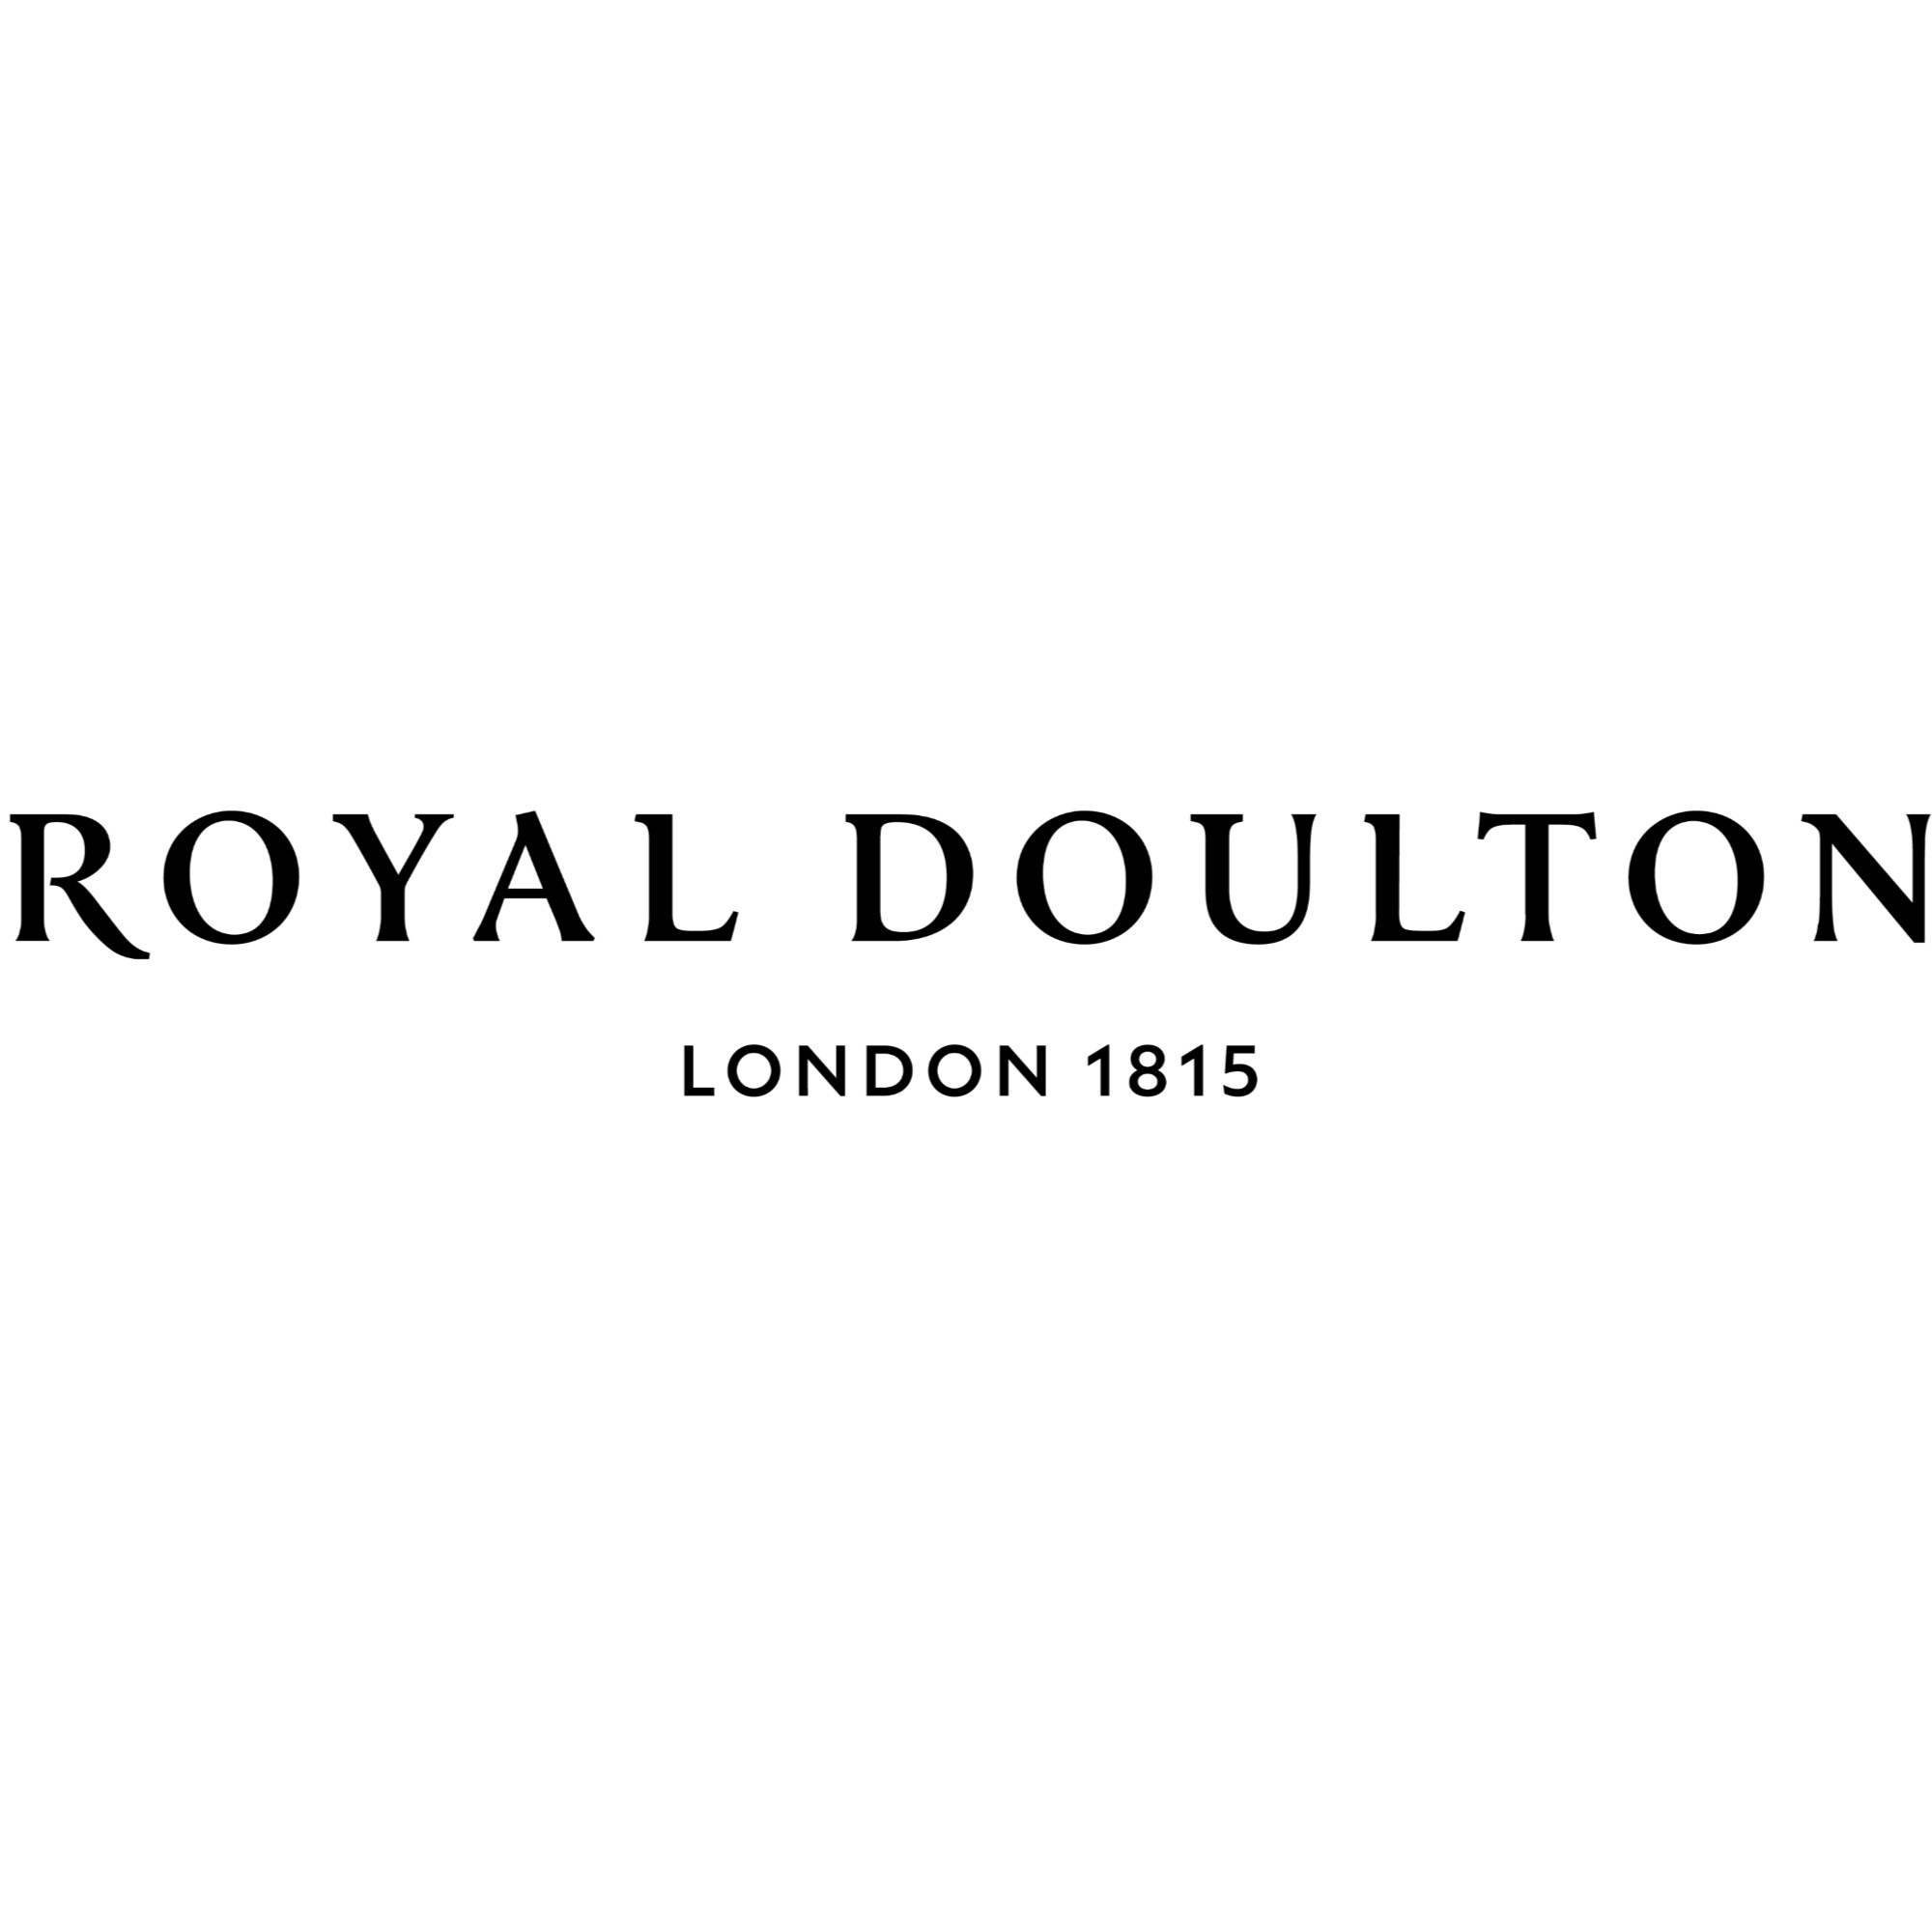 The Royal Doulton Tableware Award